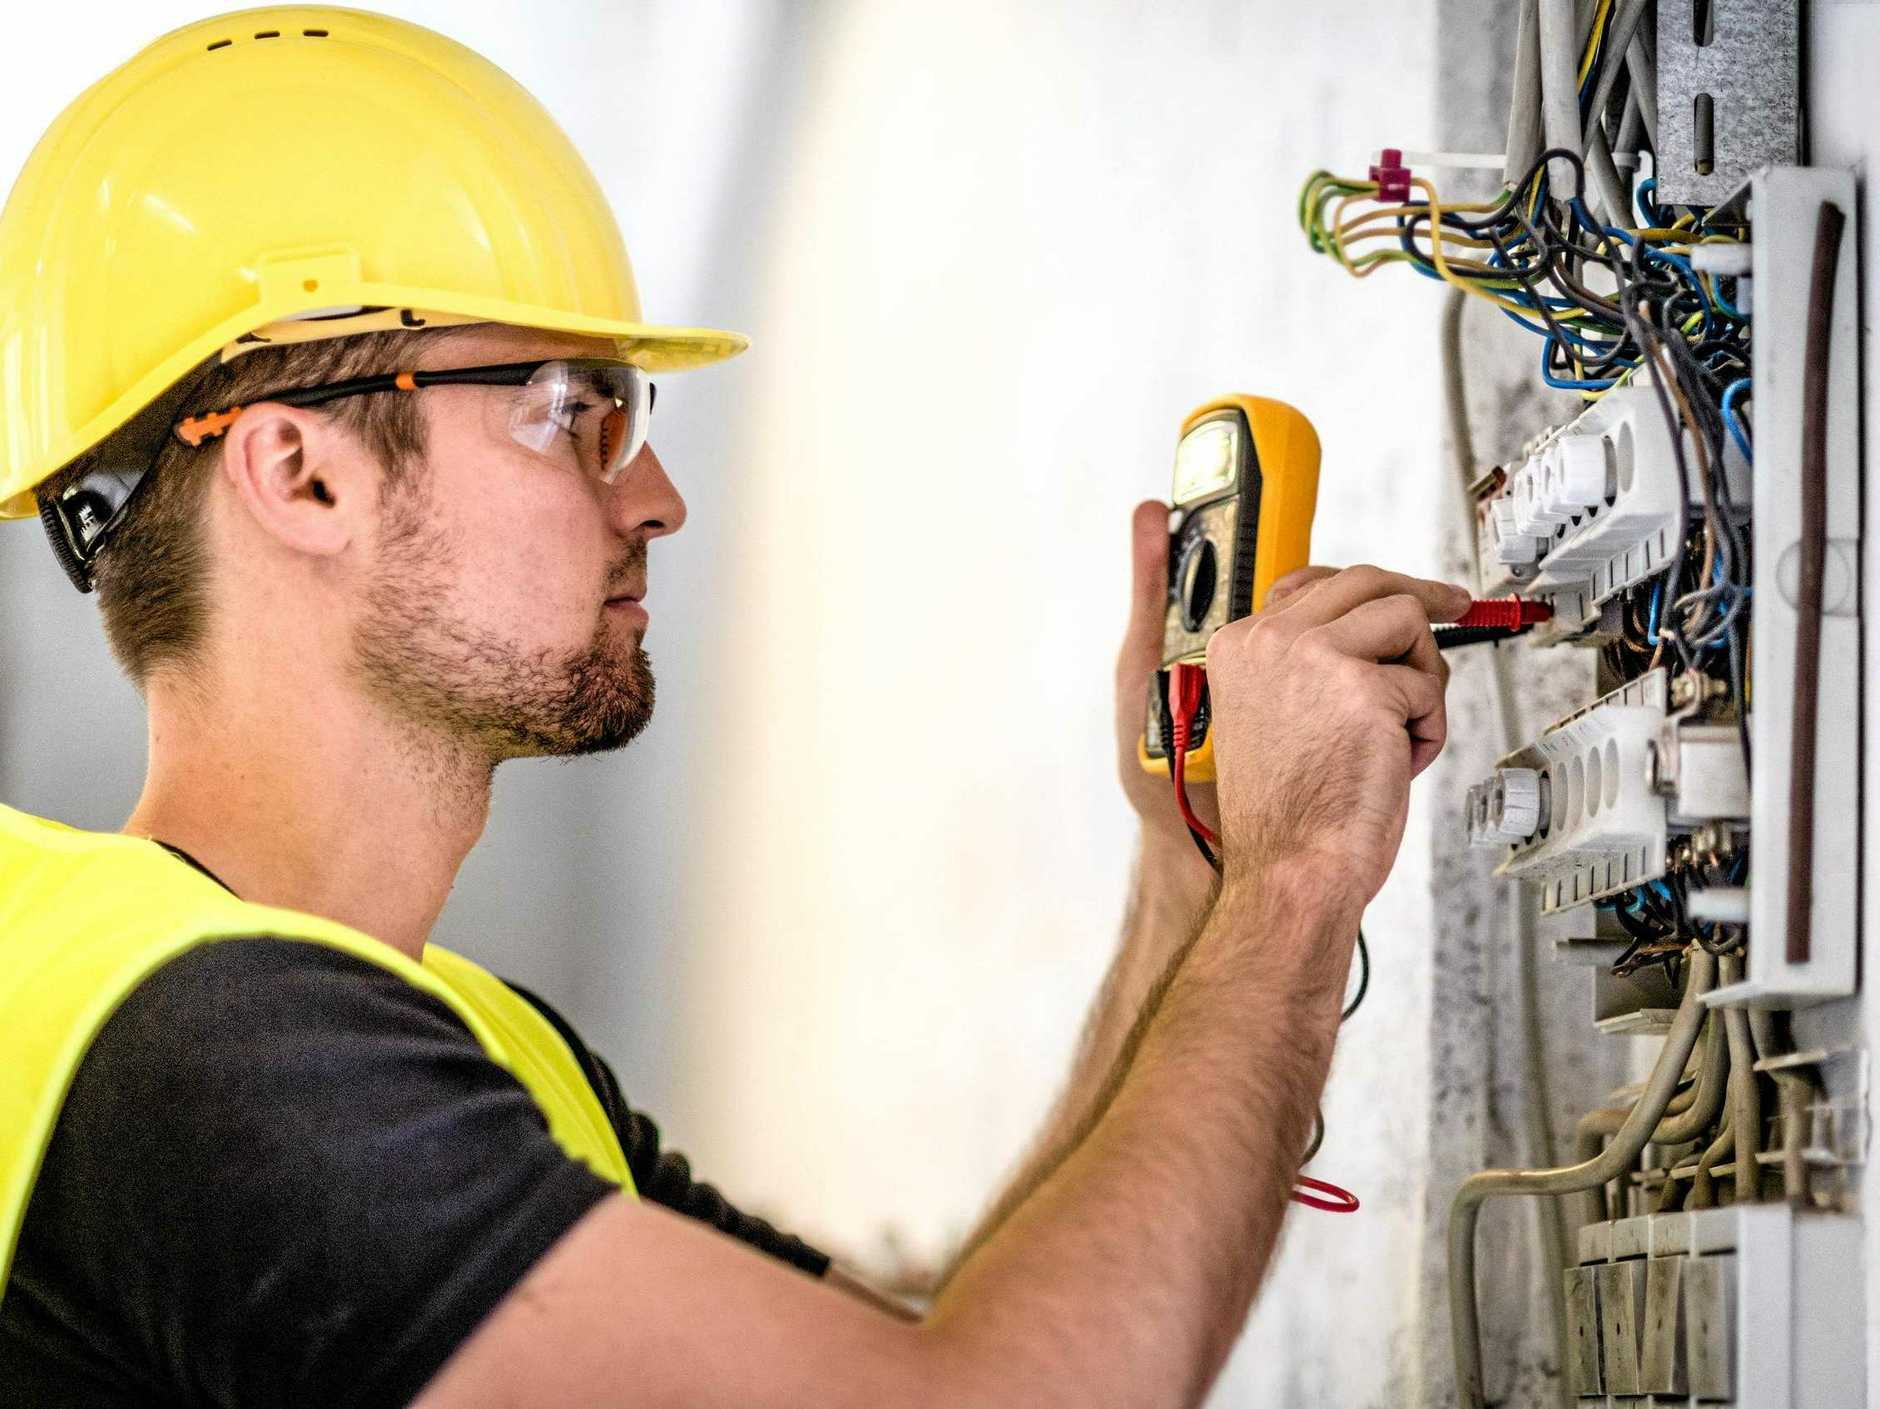 Office of Fair Trading data shows electricians are the most complained about tradies in Queensland.